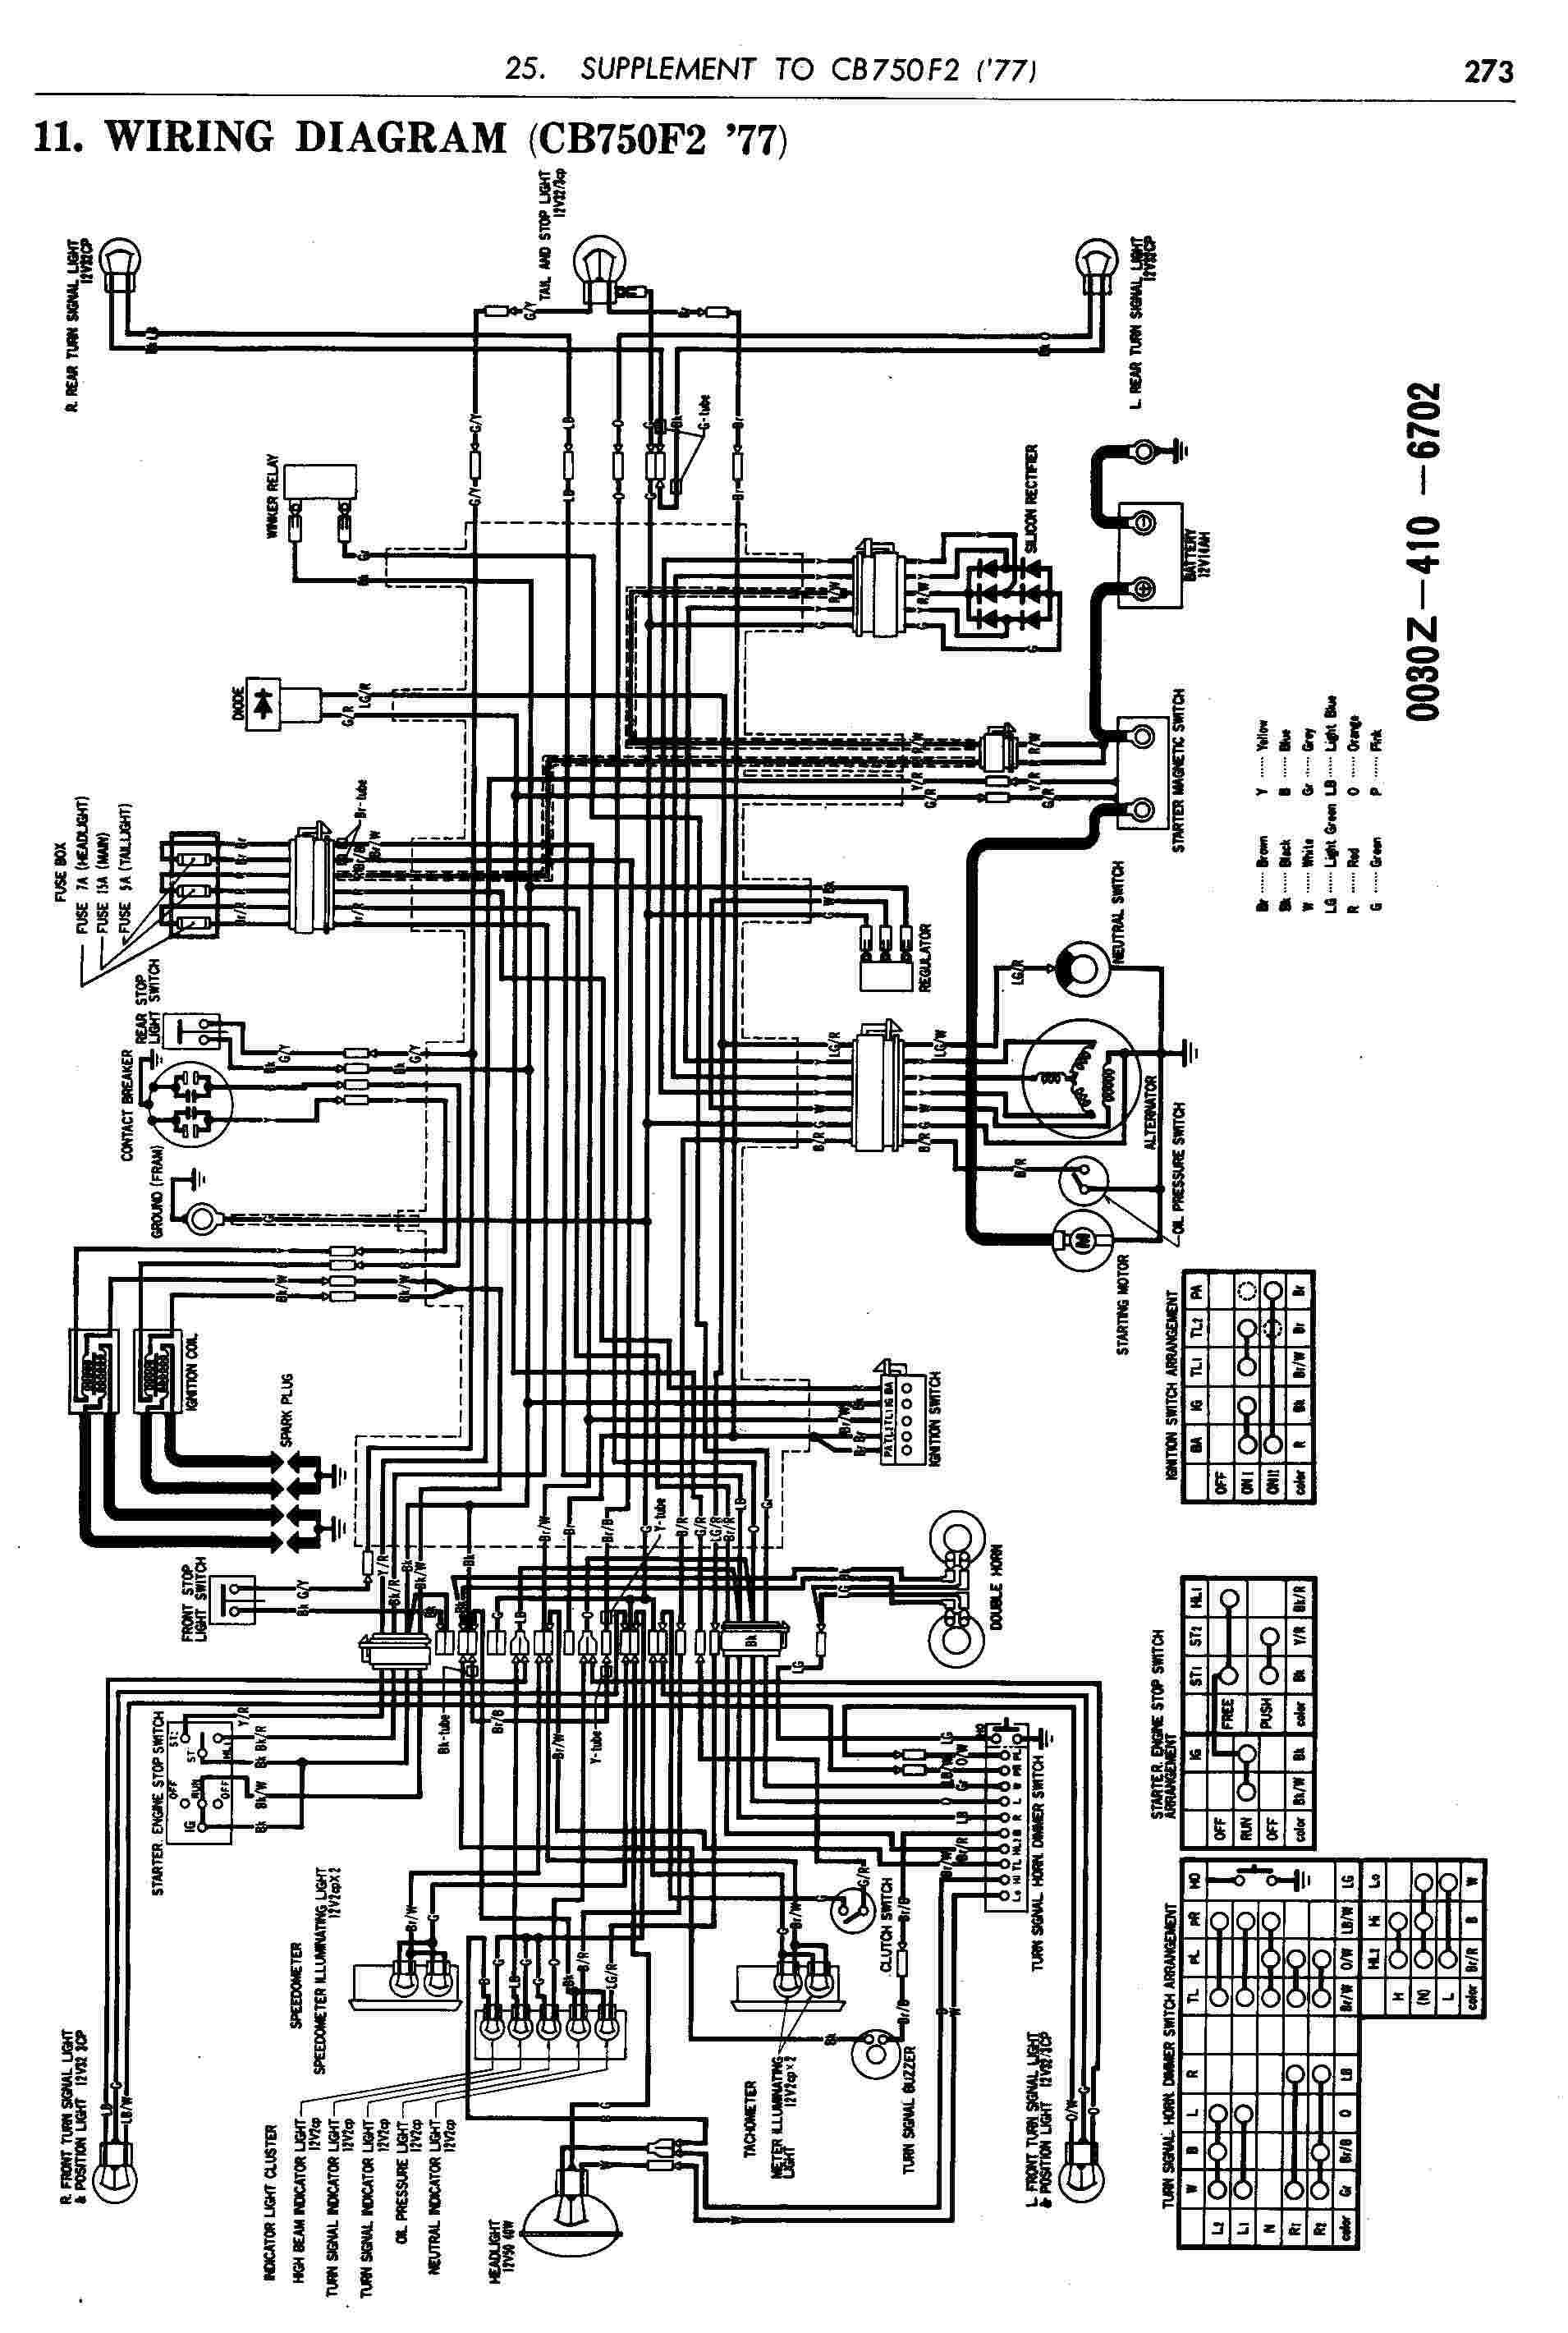 wiring diagram for motorcycle crickets wings honda diagrams cb750f2 electrical